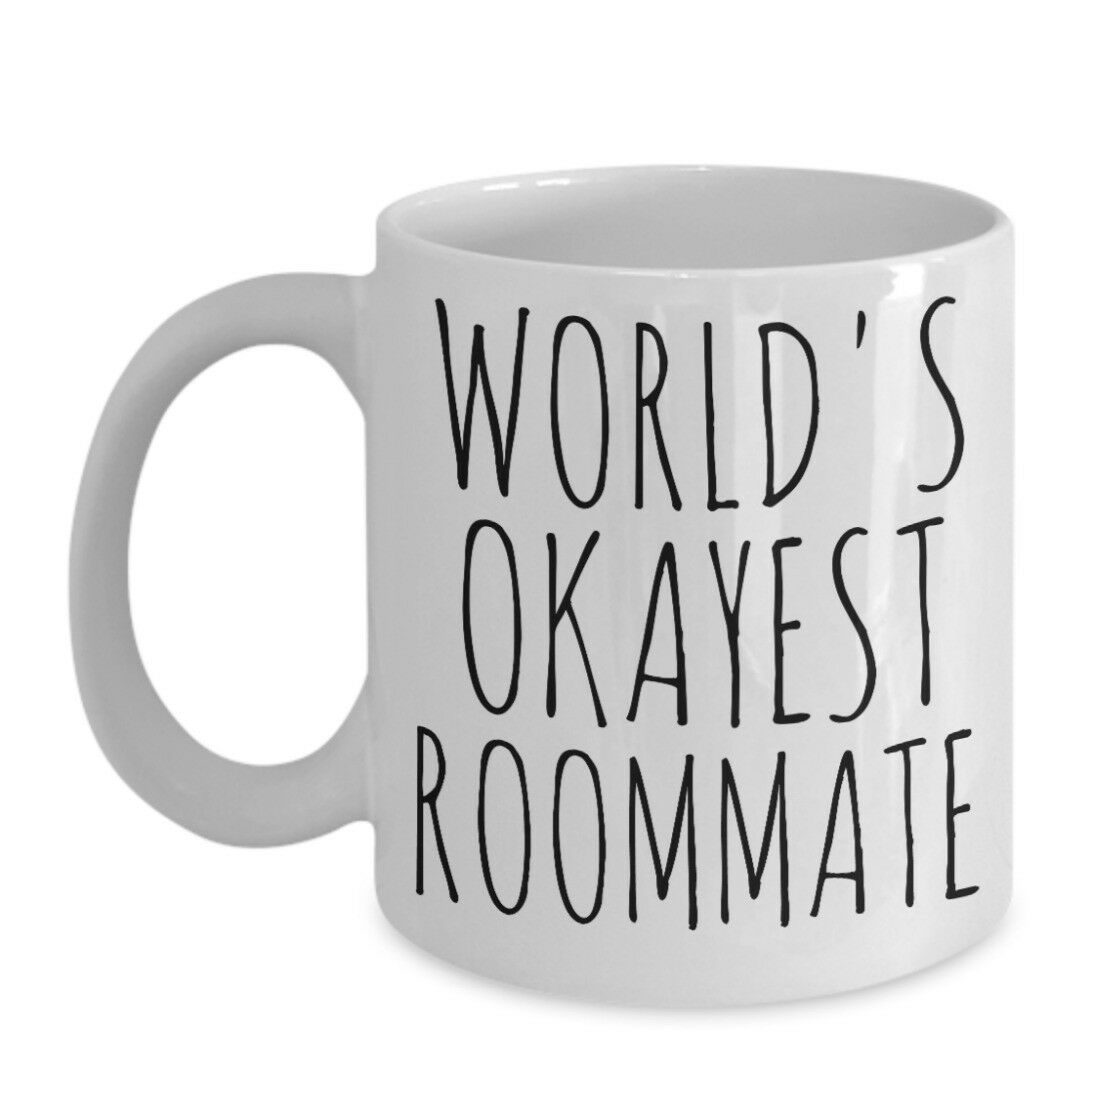 Primary image for Worlds Okayest Roommate Mug Birthday Valentines Gag Gift Ceramic Coffee Cup